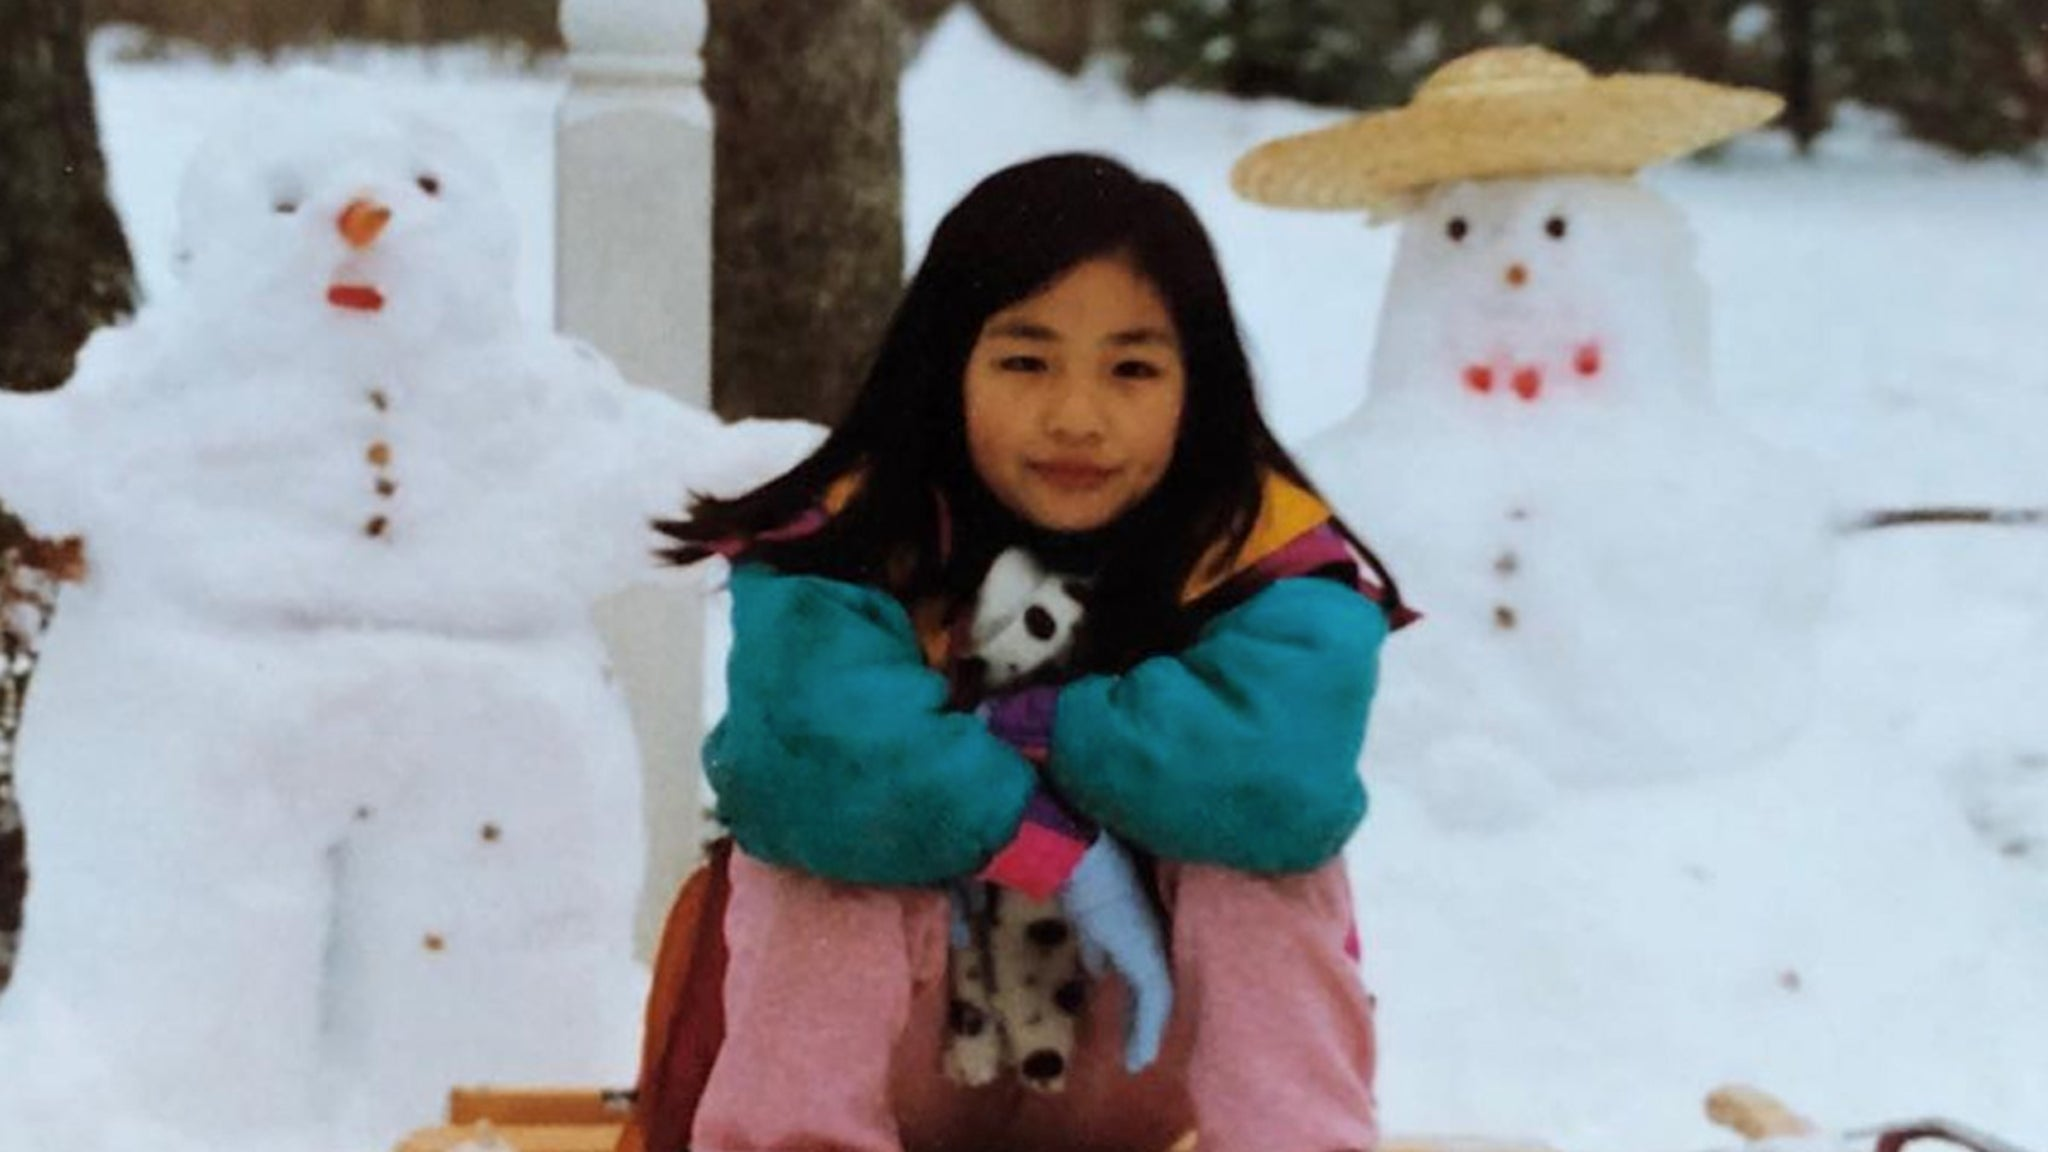 Guess Who This Sledding Star Turned Into! - EpicNews